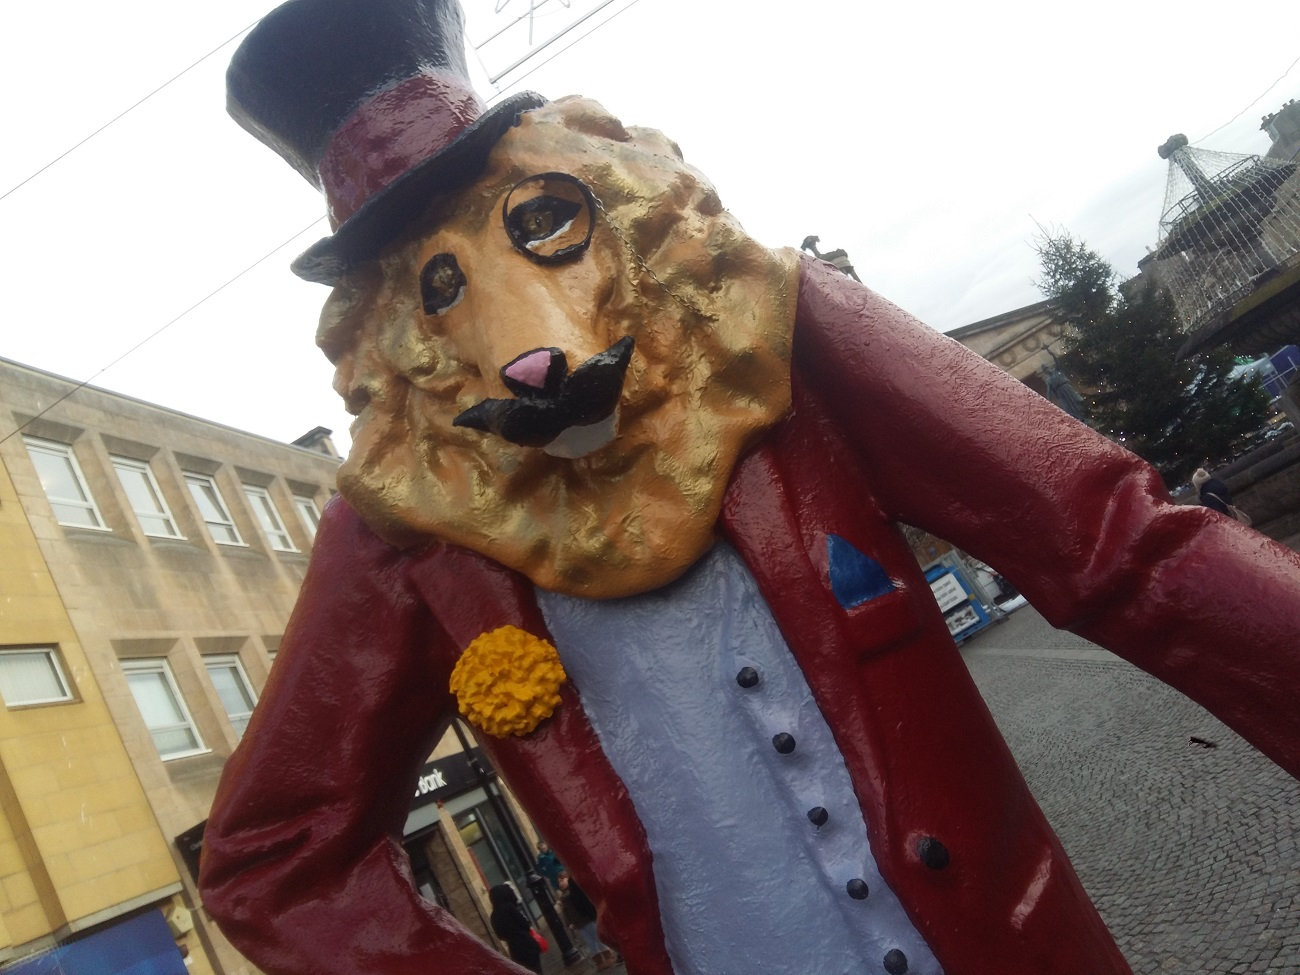 dandy-lion-statue-elgin.jpg